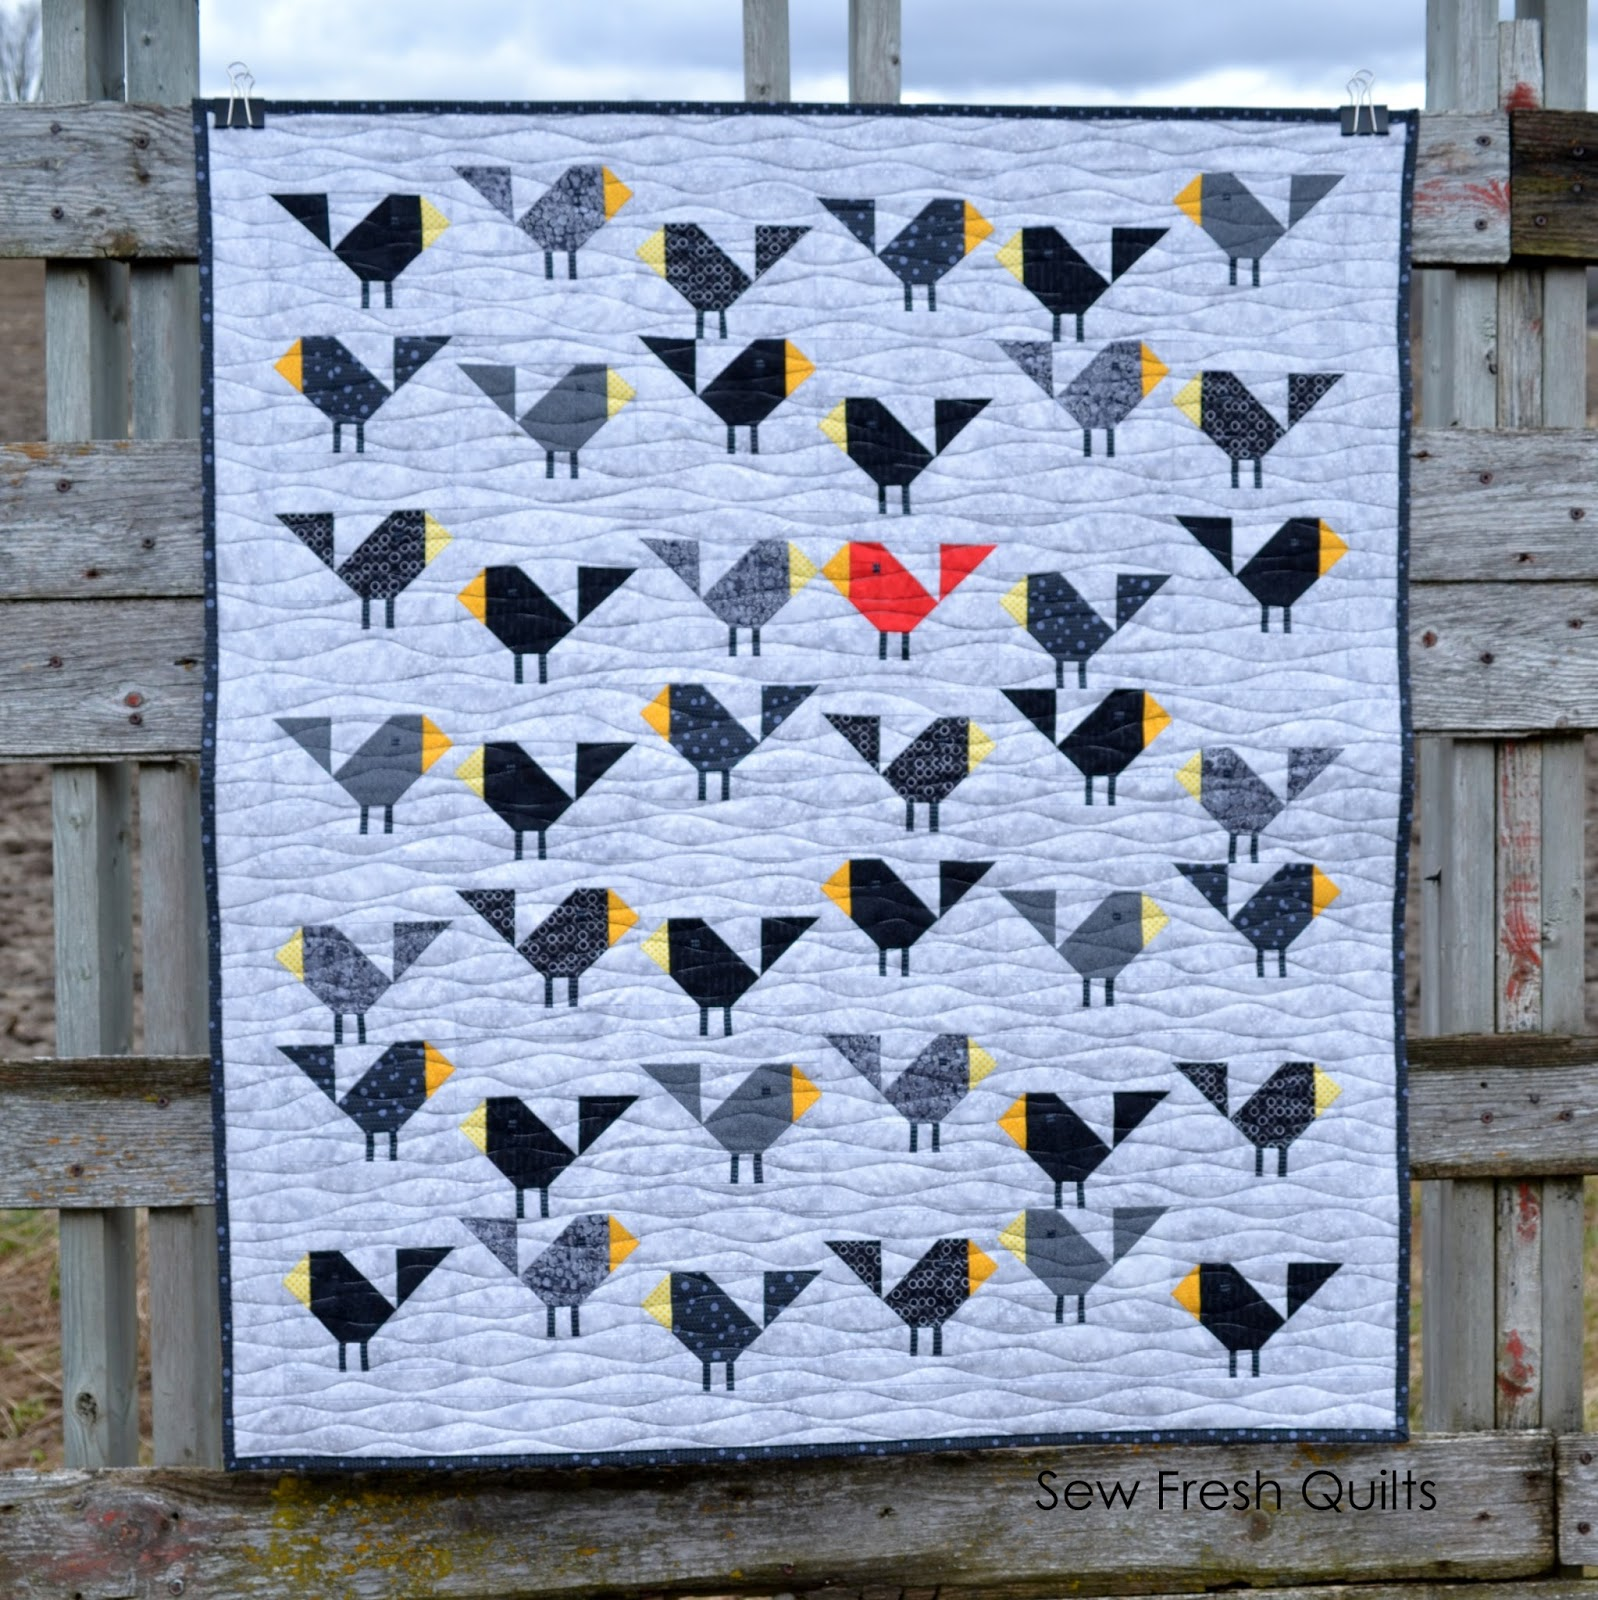 Sew Fresh Quilts: Black Birds baby quilt